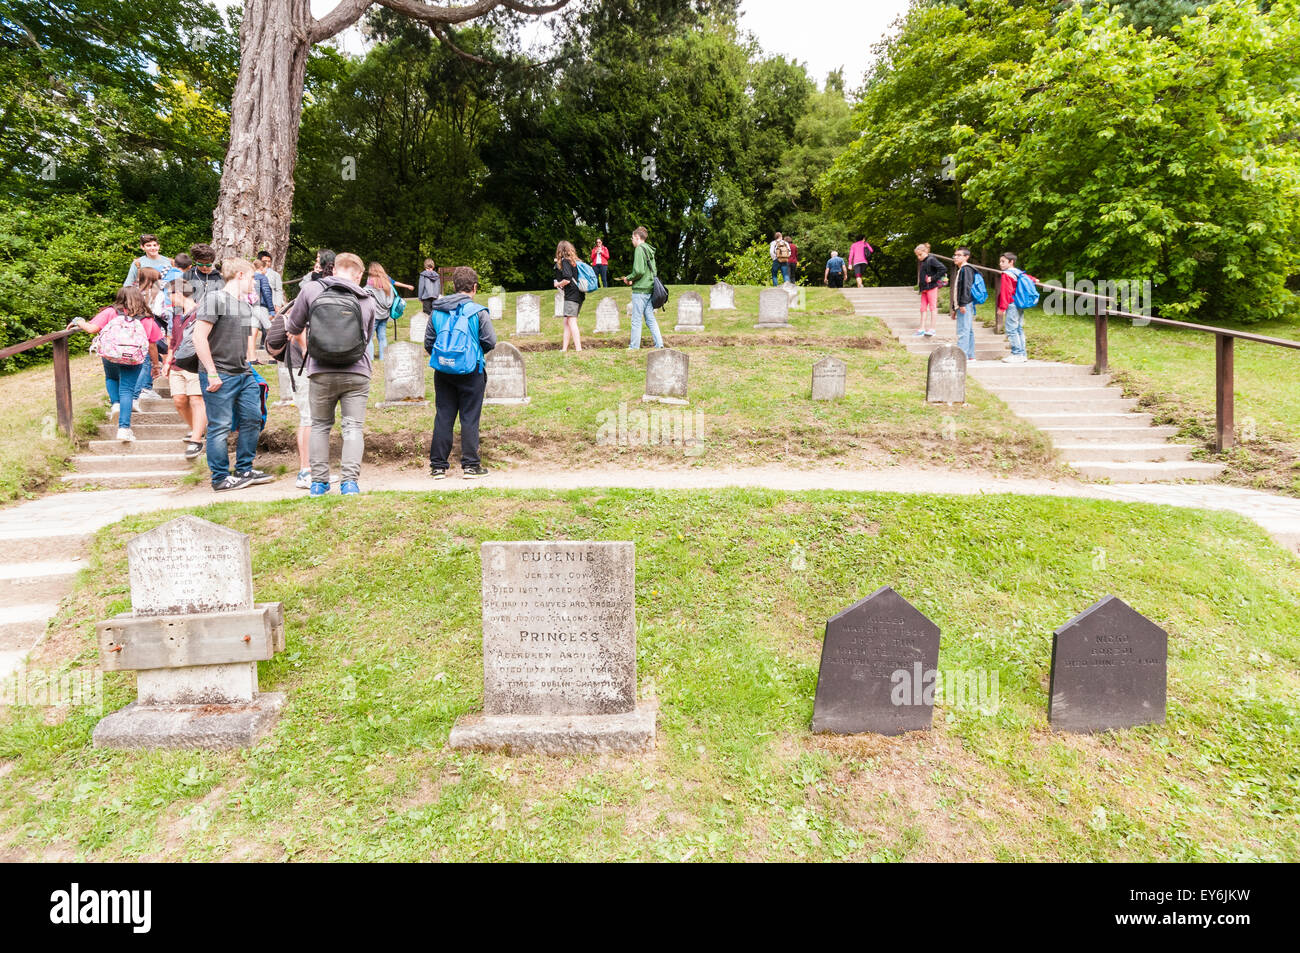 People visiting a pet cemetery at Powerscourt, Ireland - Stock Image